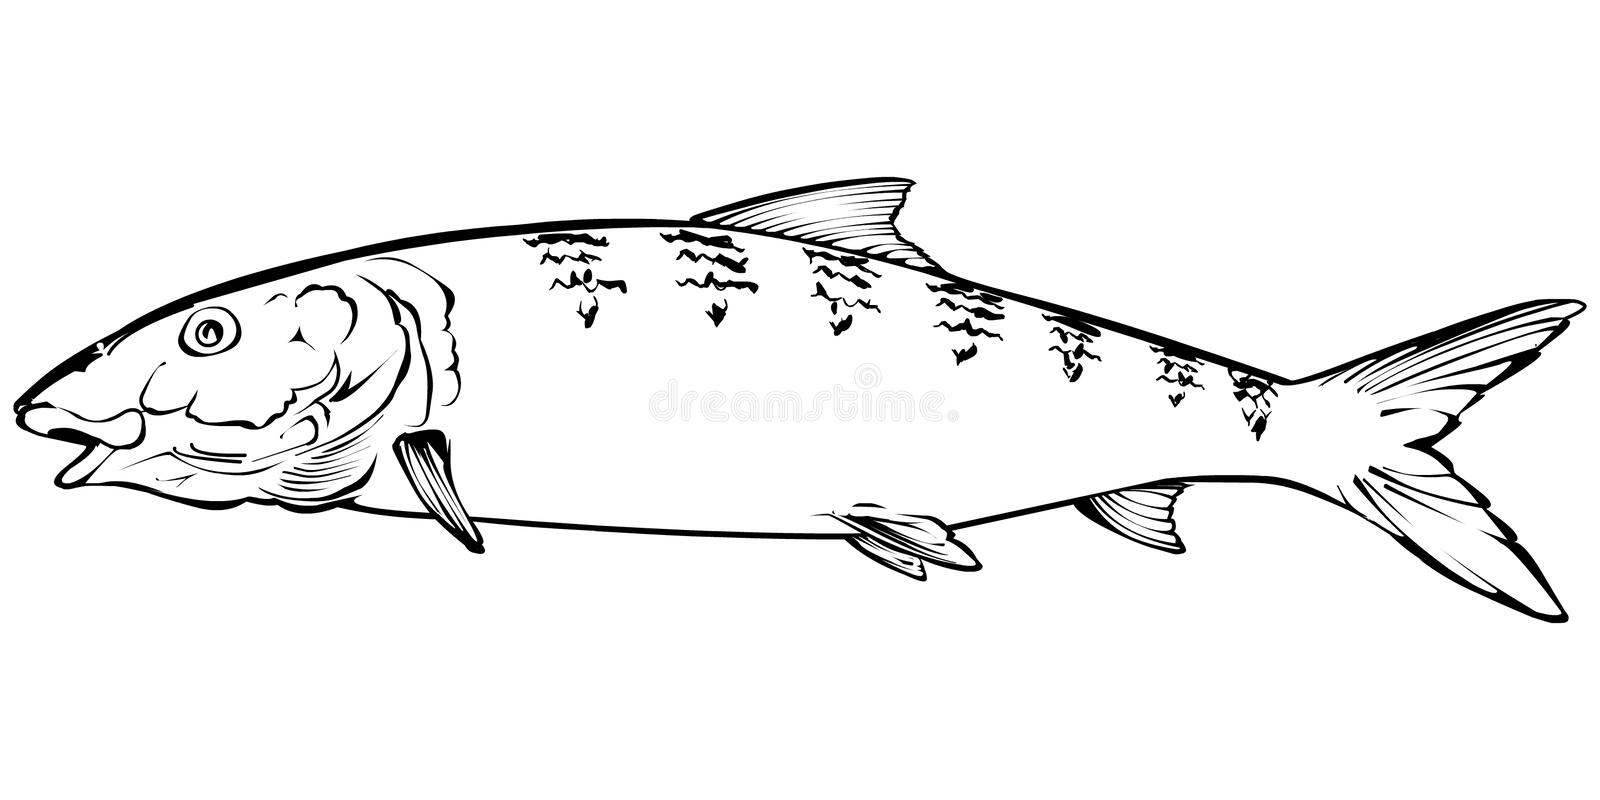 Illustration de Bonefish illustration libre de droits